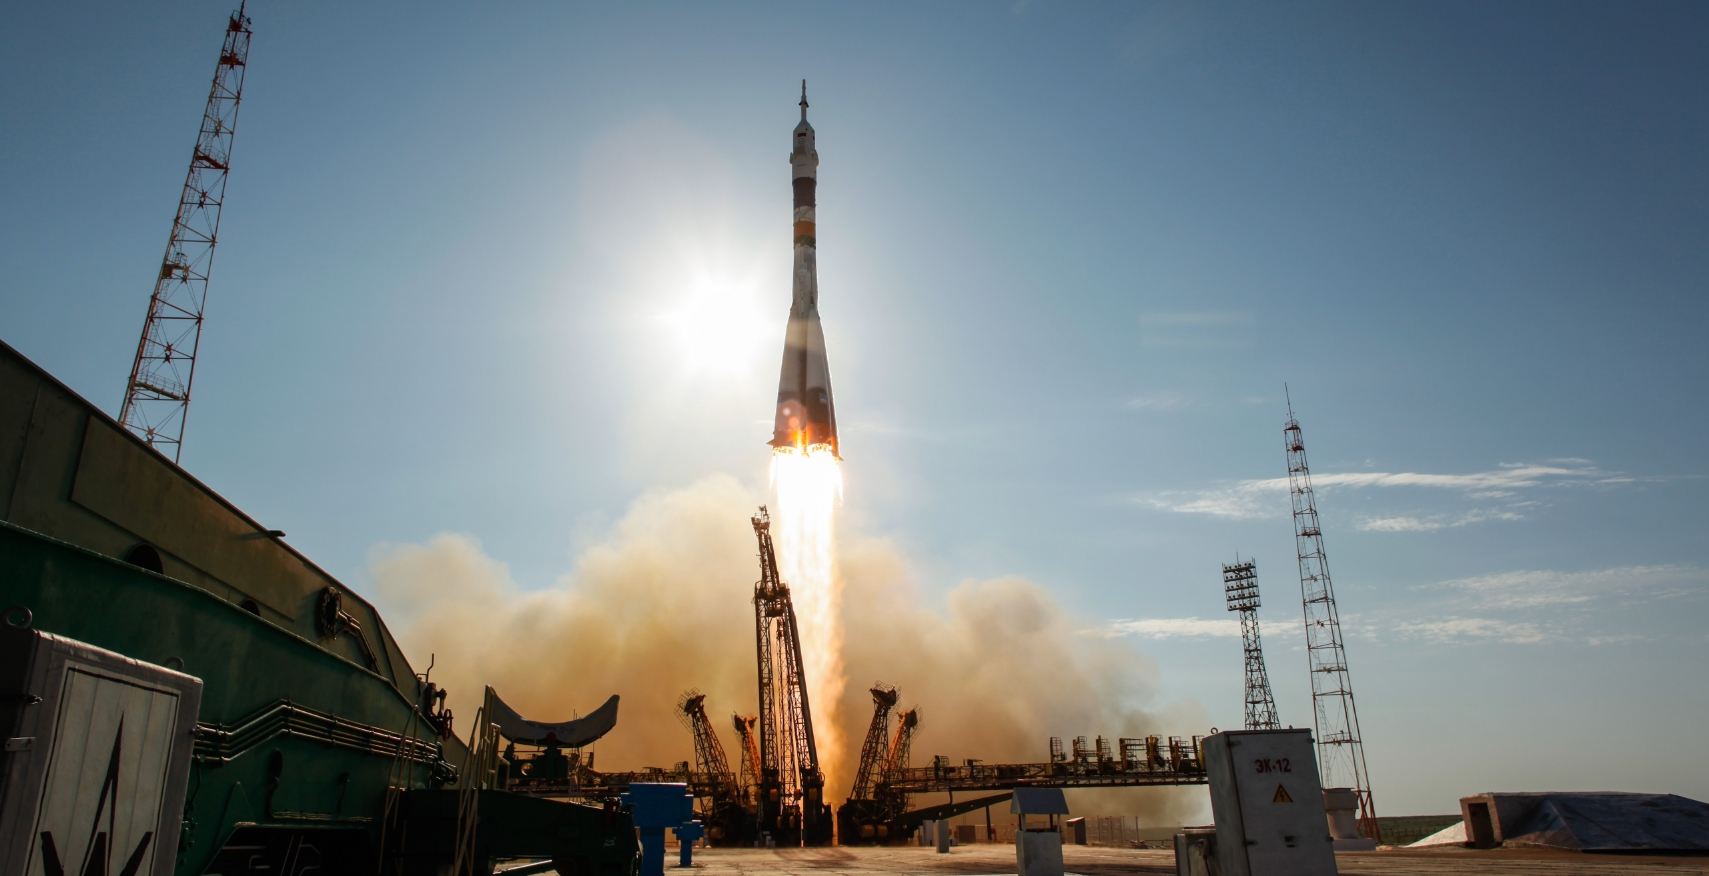 Soyuz-FG on penultimate flight delivers three new crewmembers for